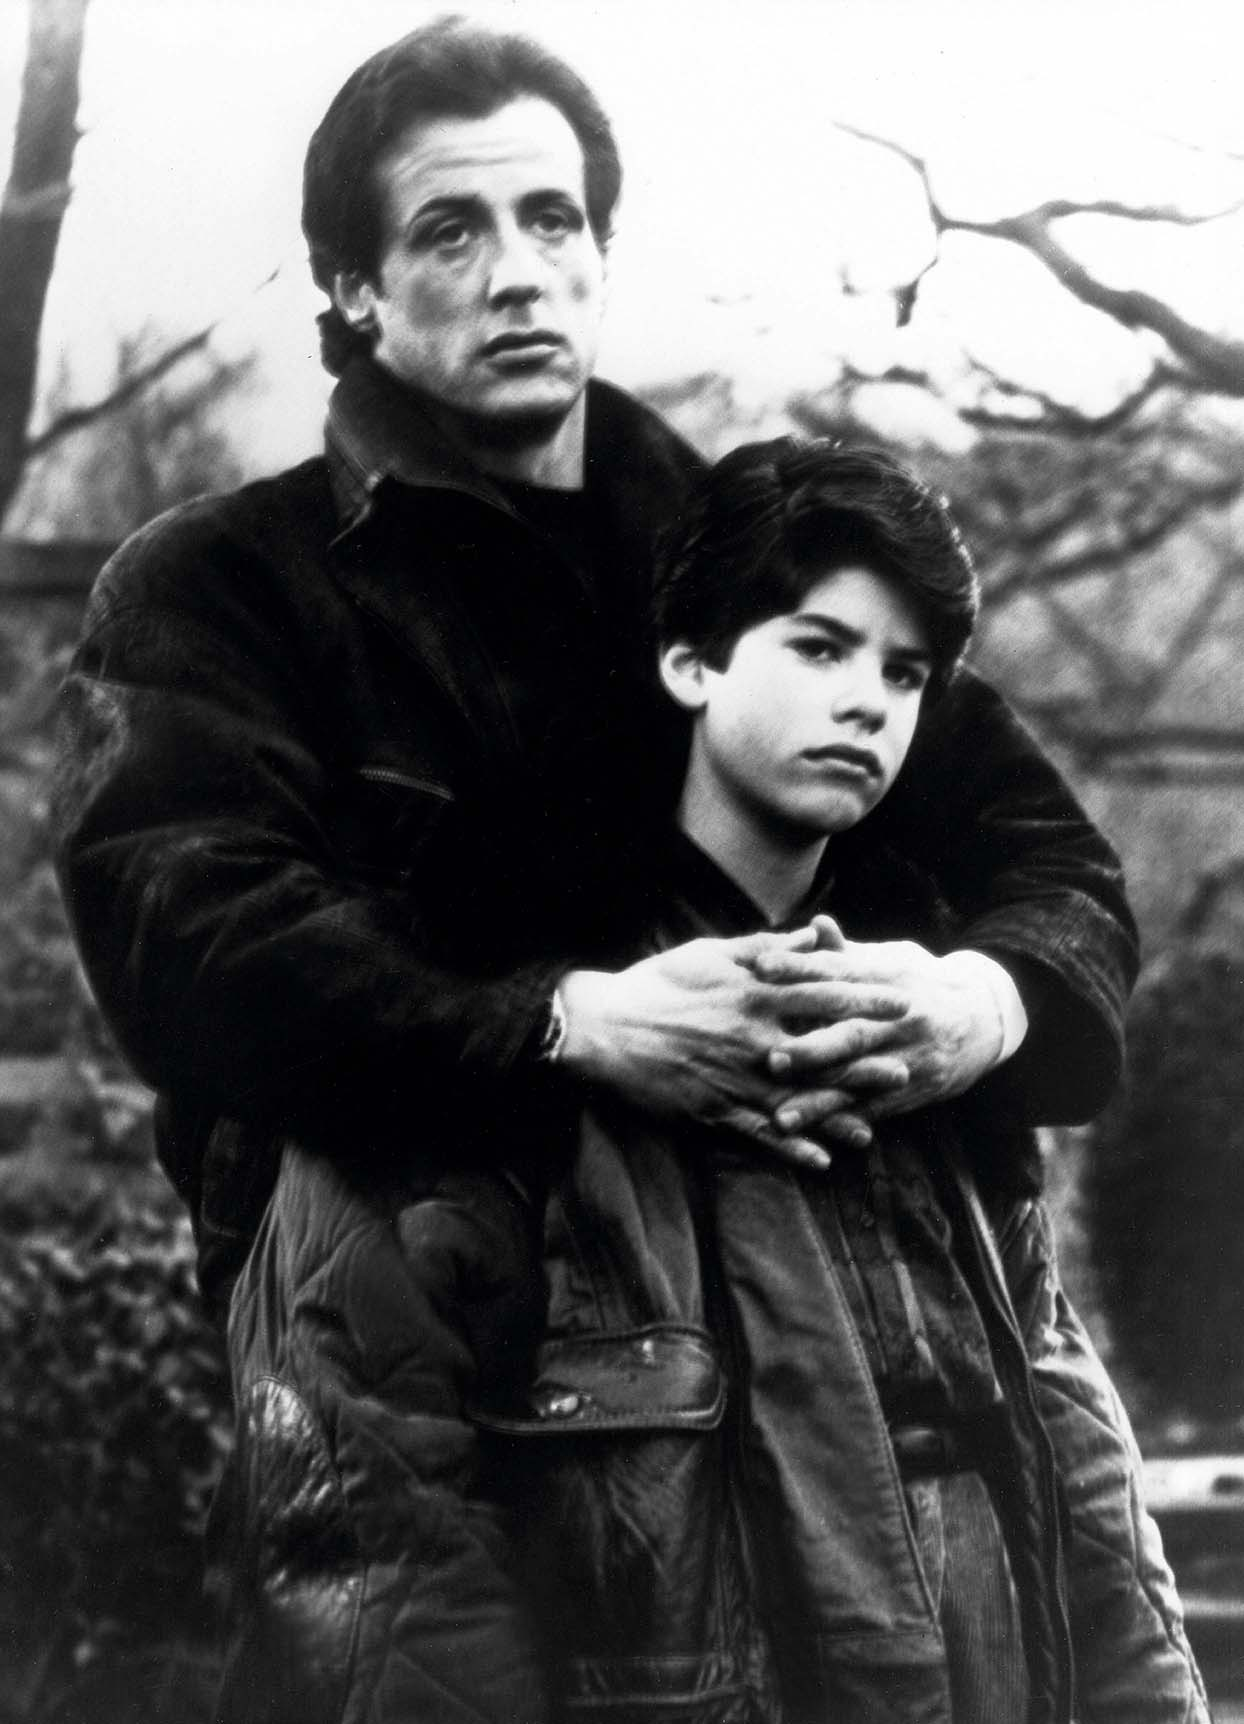 SYLVESTER STALLONE with his son Sage Stallone.Rocky V.1990., Image: 121687693, License: Rights-managed, Restrictions: , Model Release: no, Credit line: Profimedia, Zuma Press - Archives